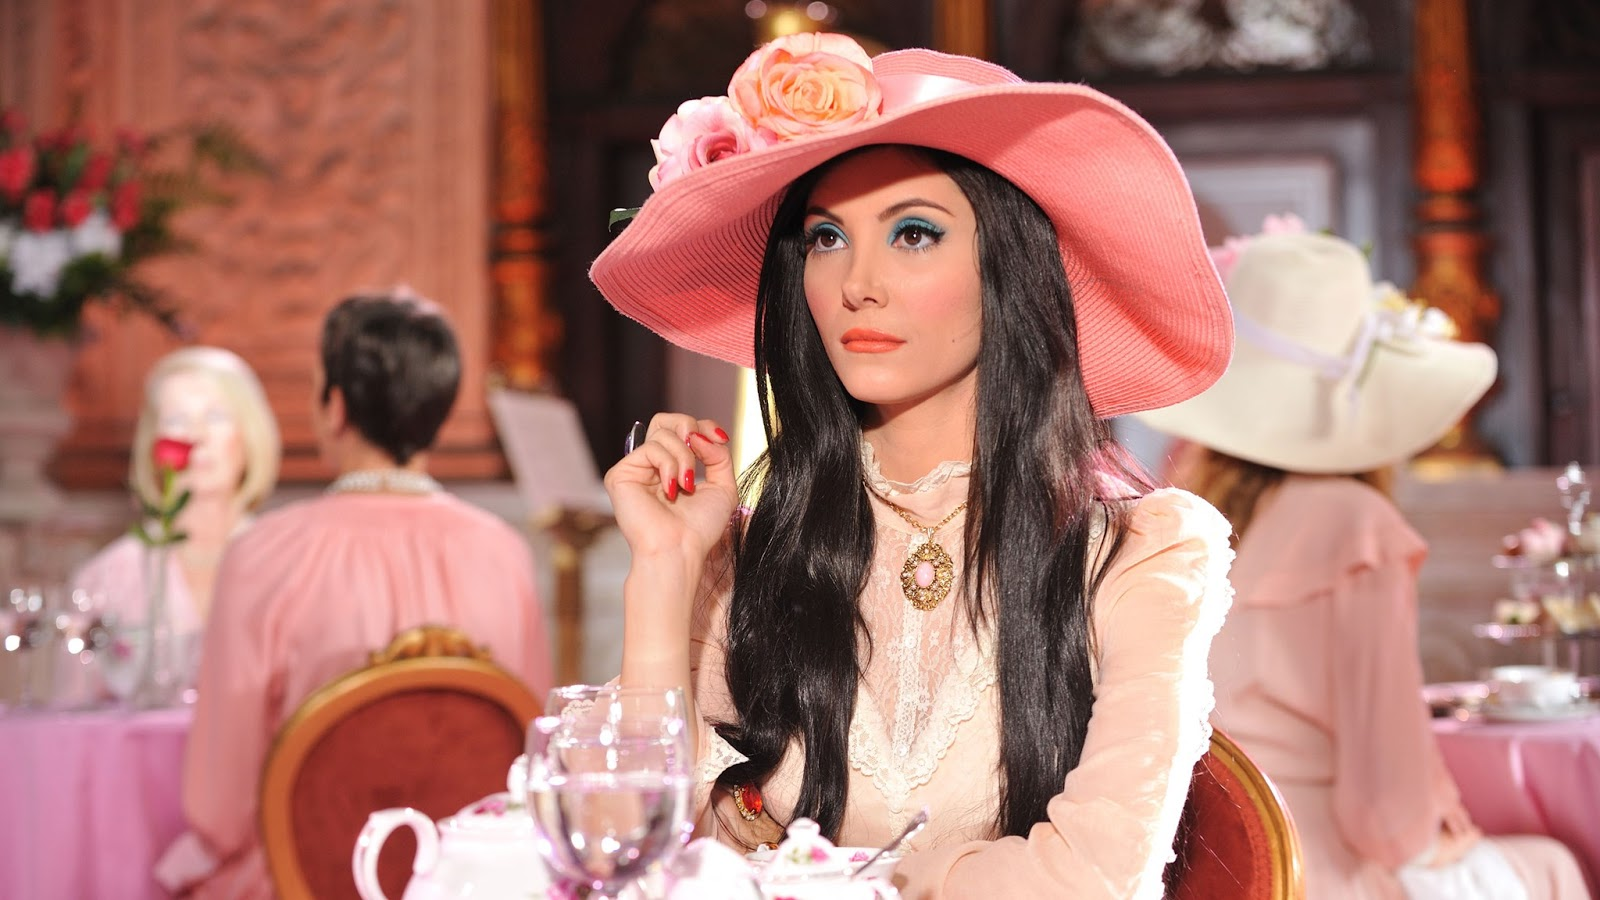 The Love Witch: Samantha Robinson in una scena del film